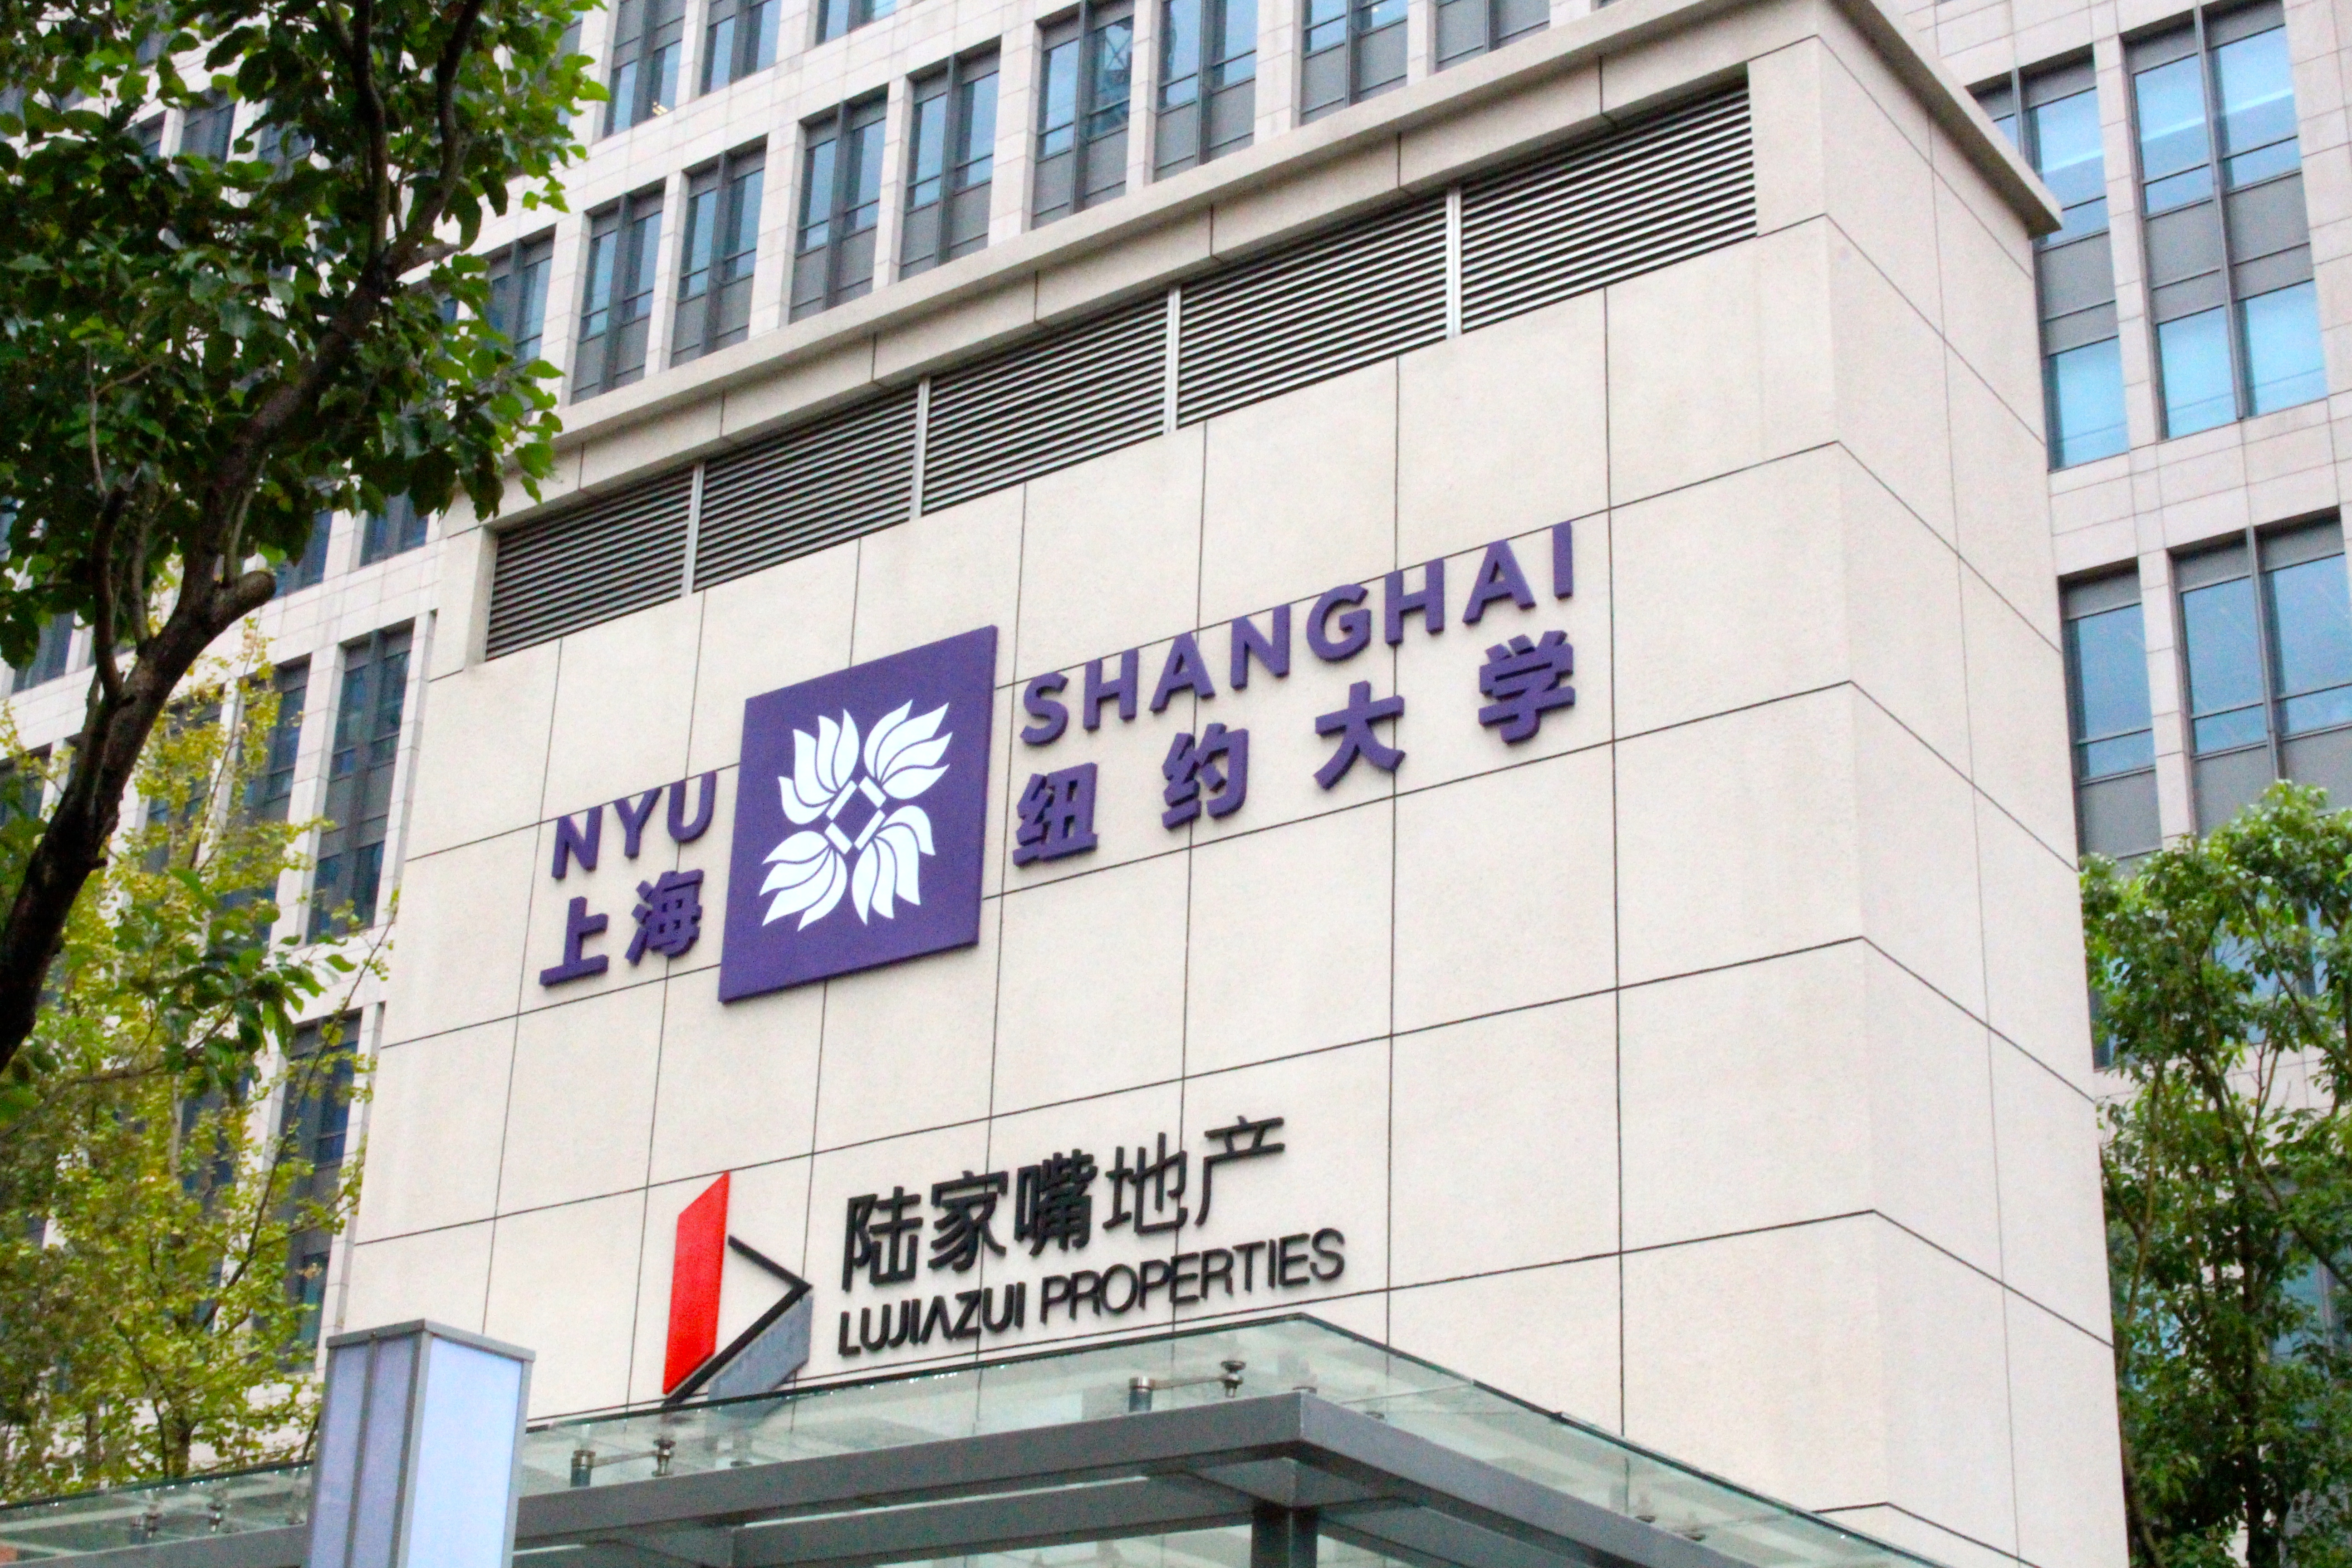 How Green is NYU Shanghai? | On Century Avenue